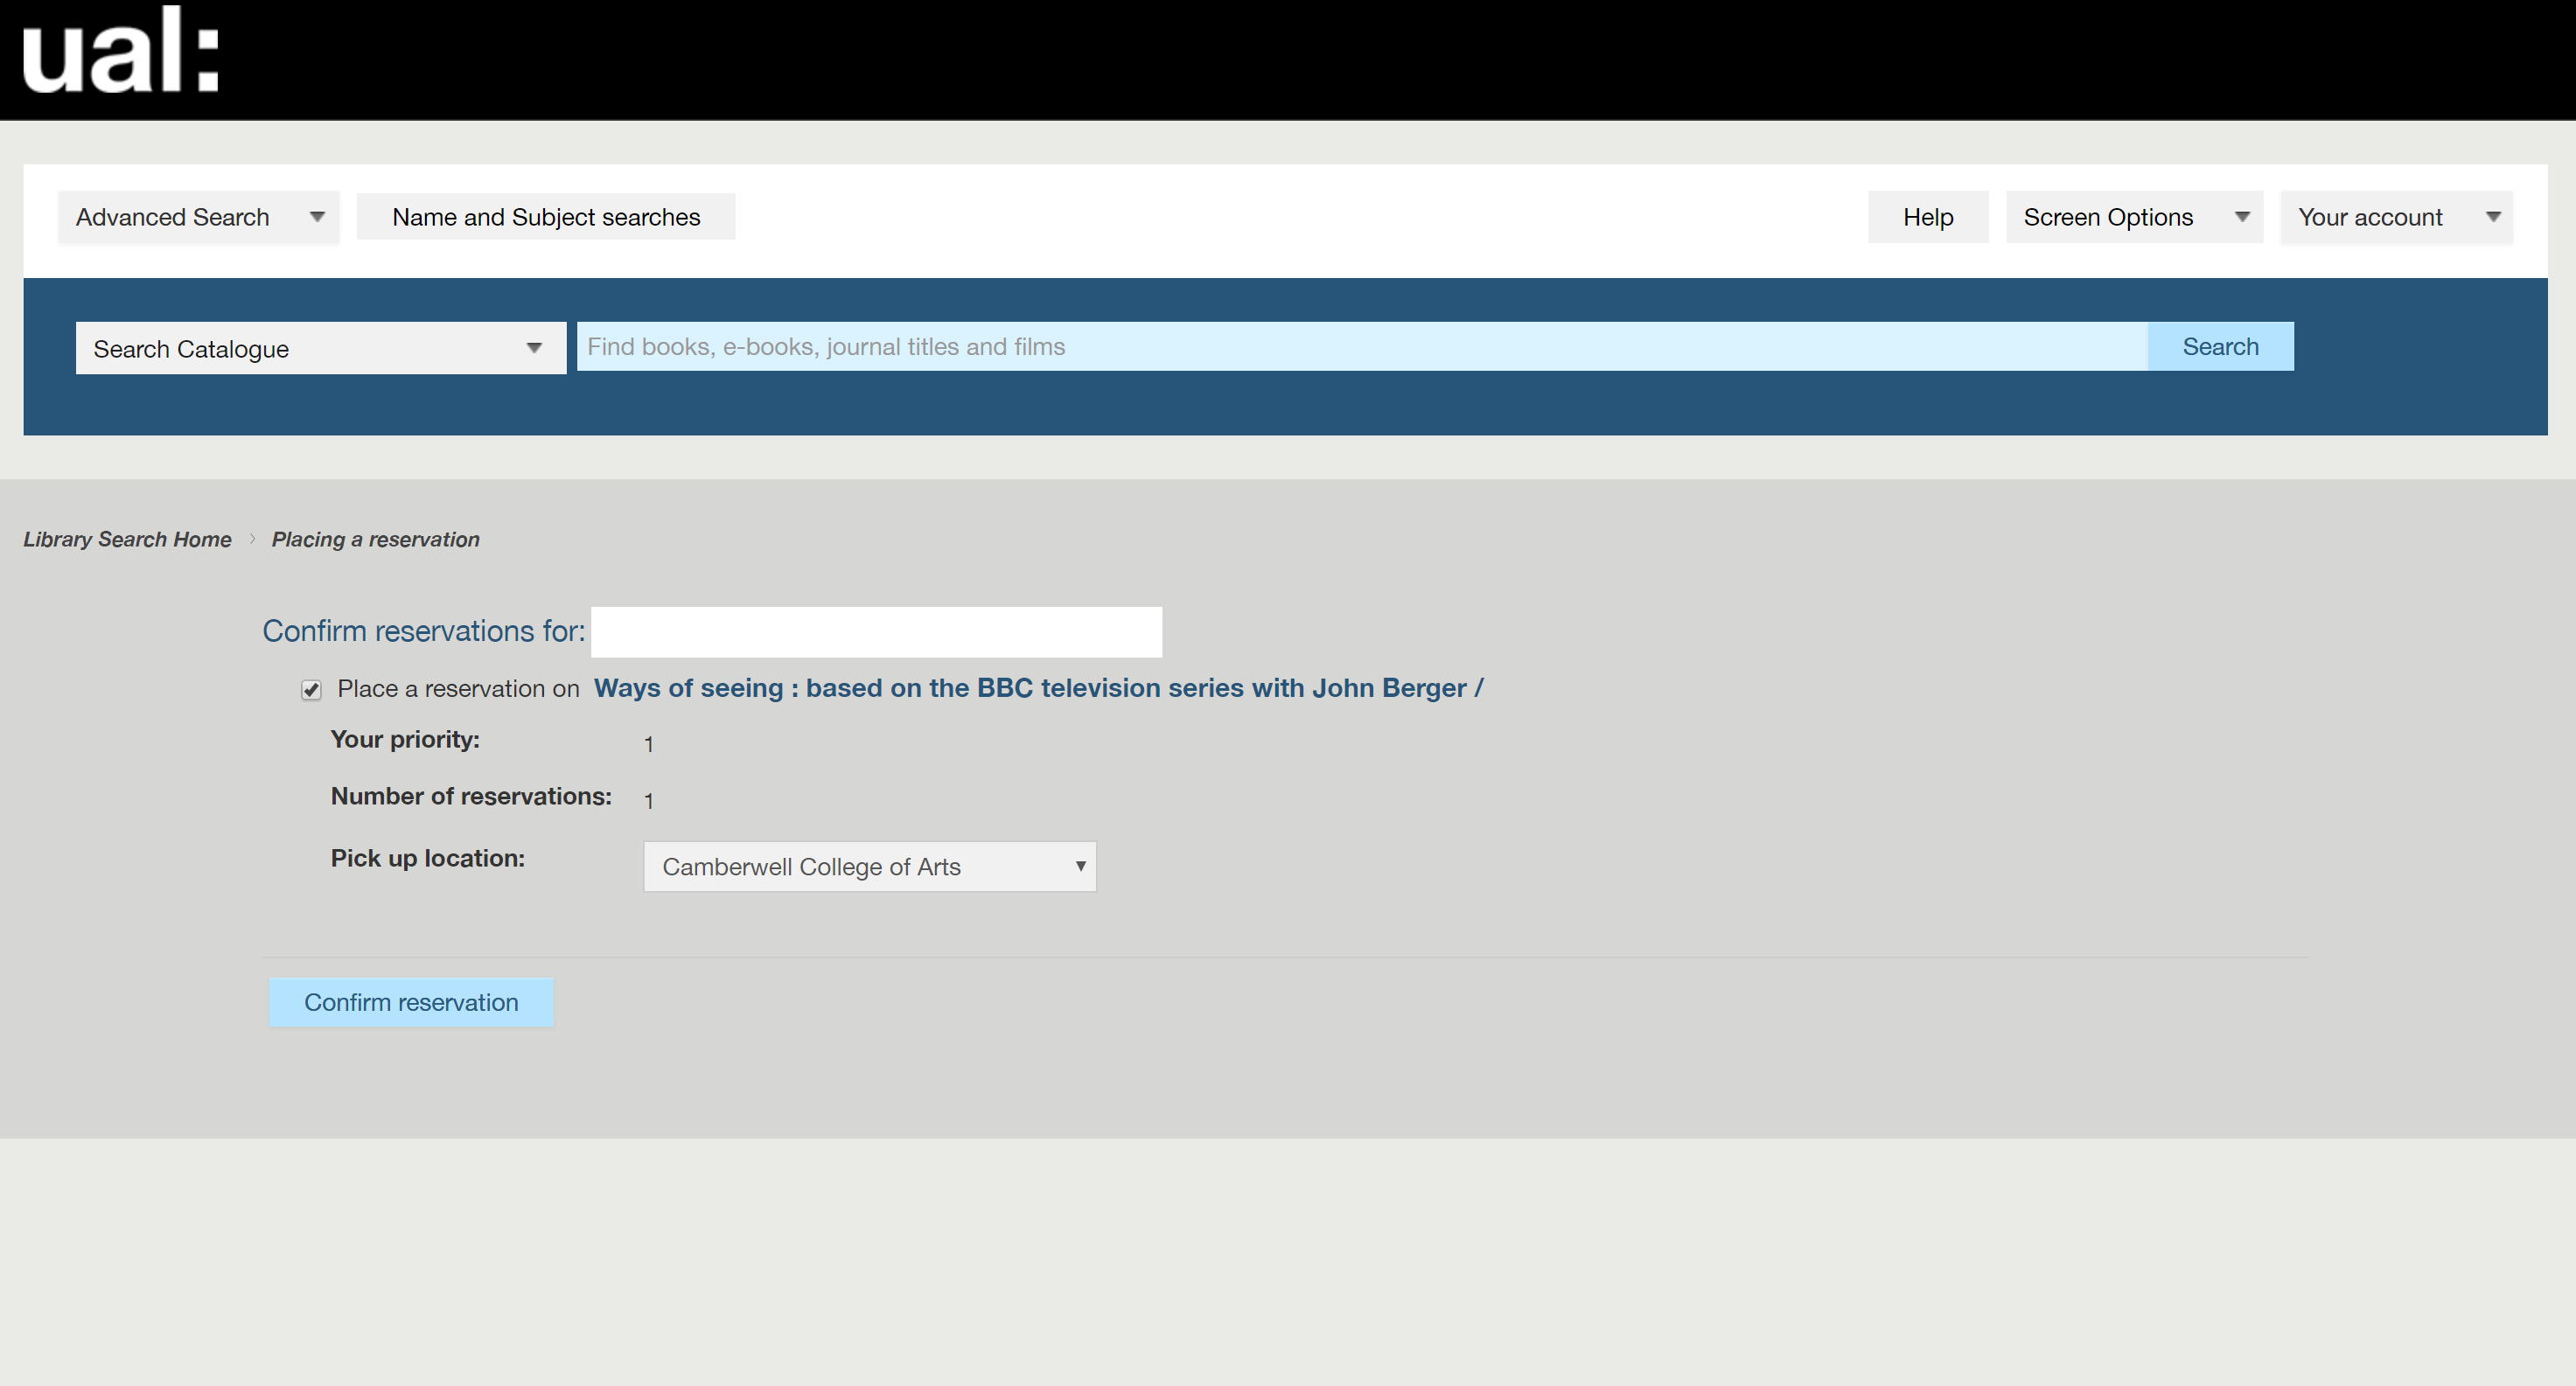 University of the Arts London Libsearch reservation page example image